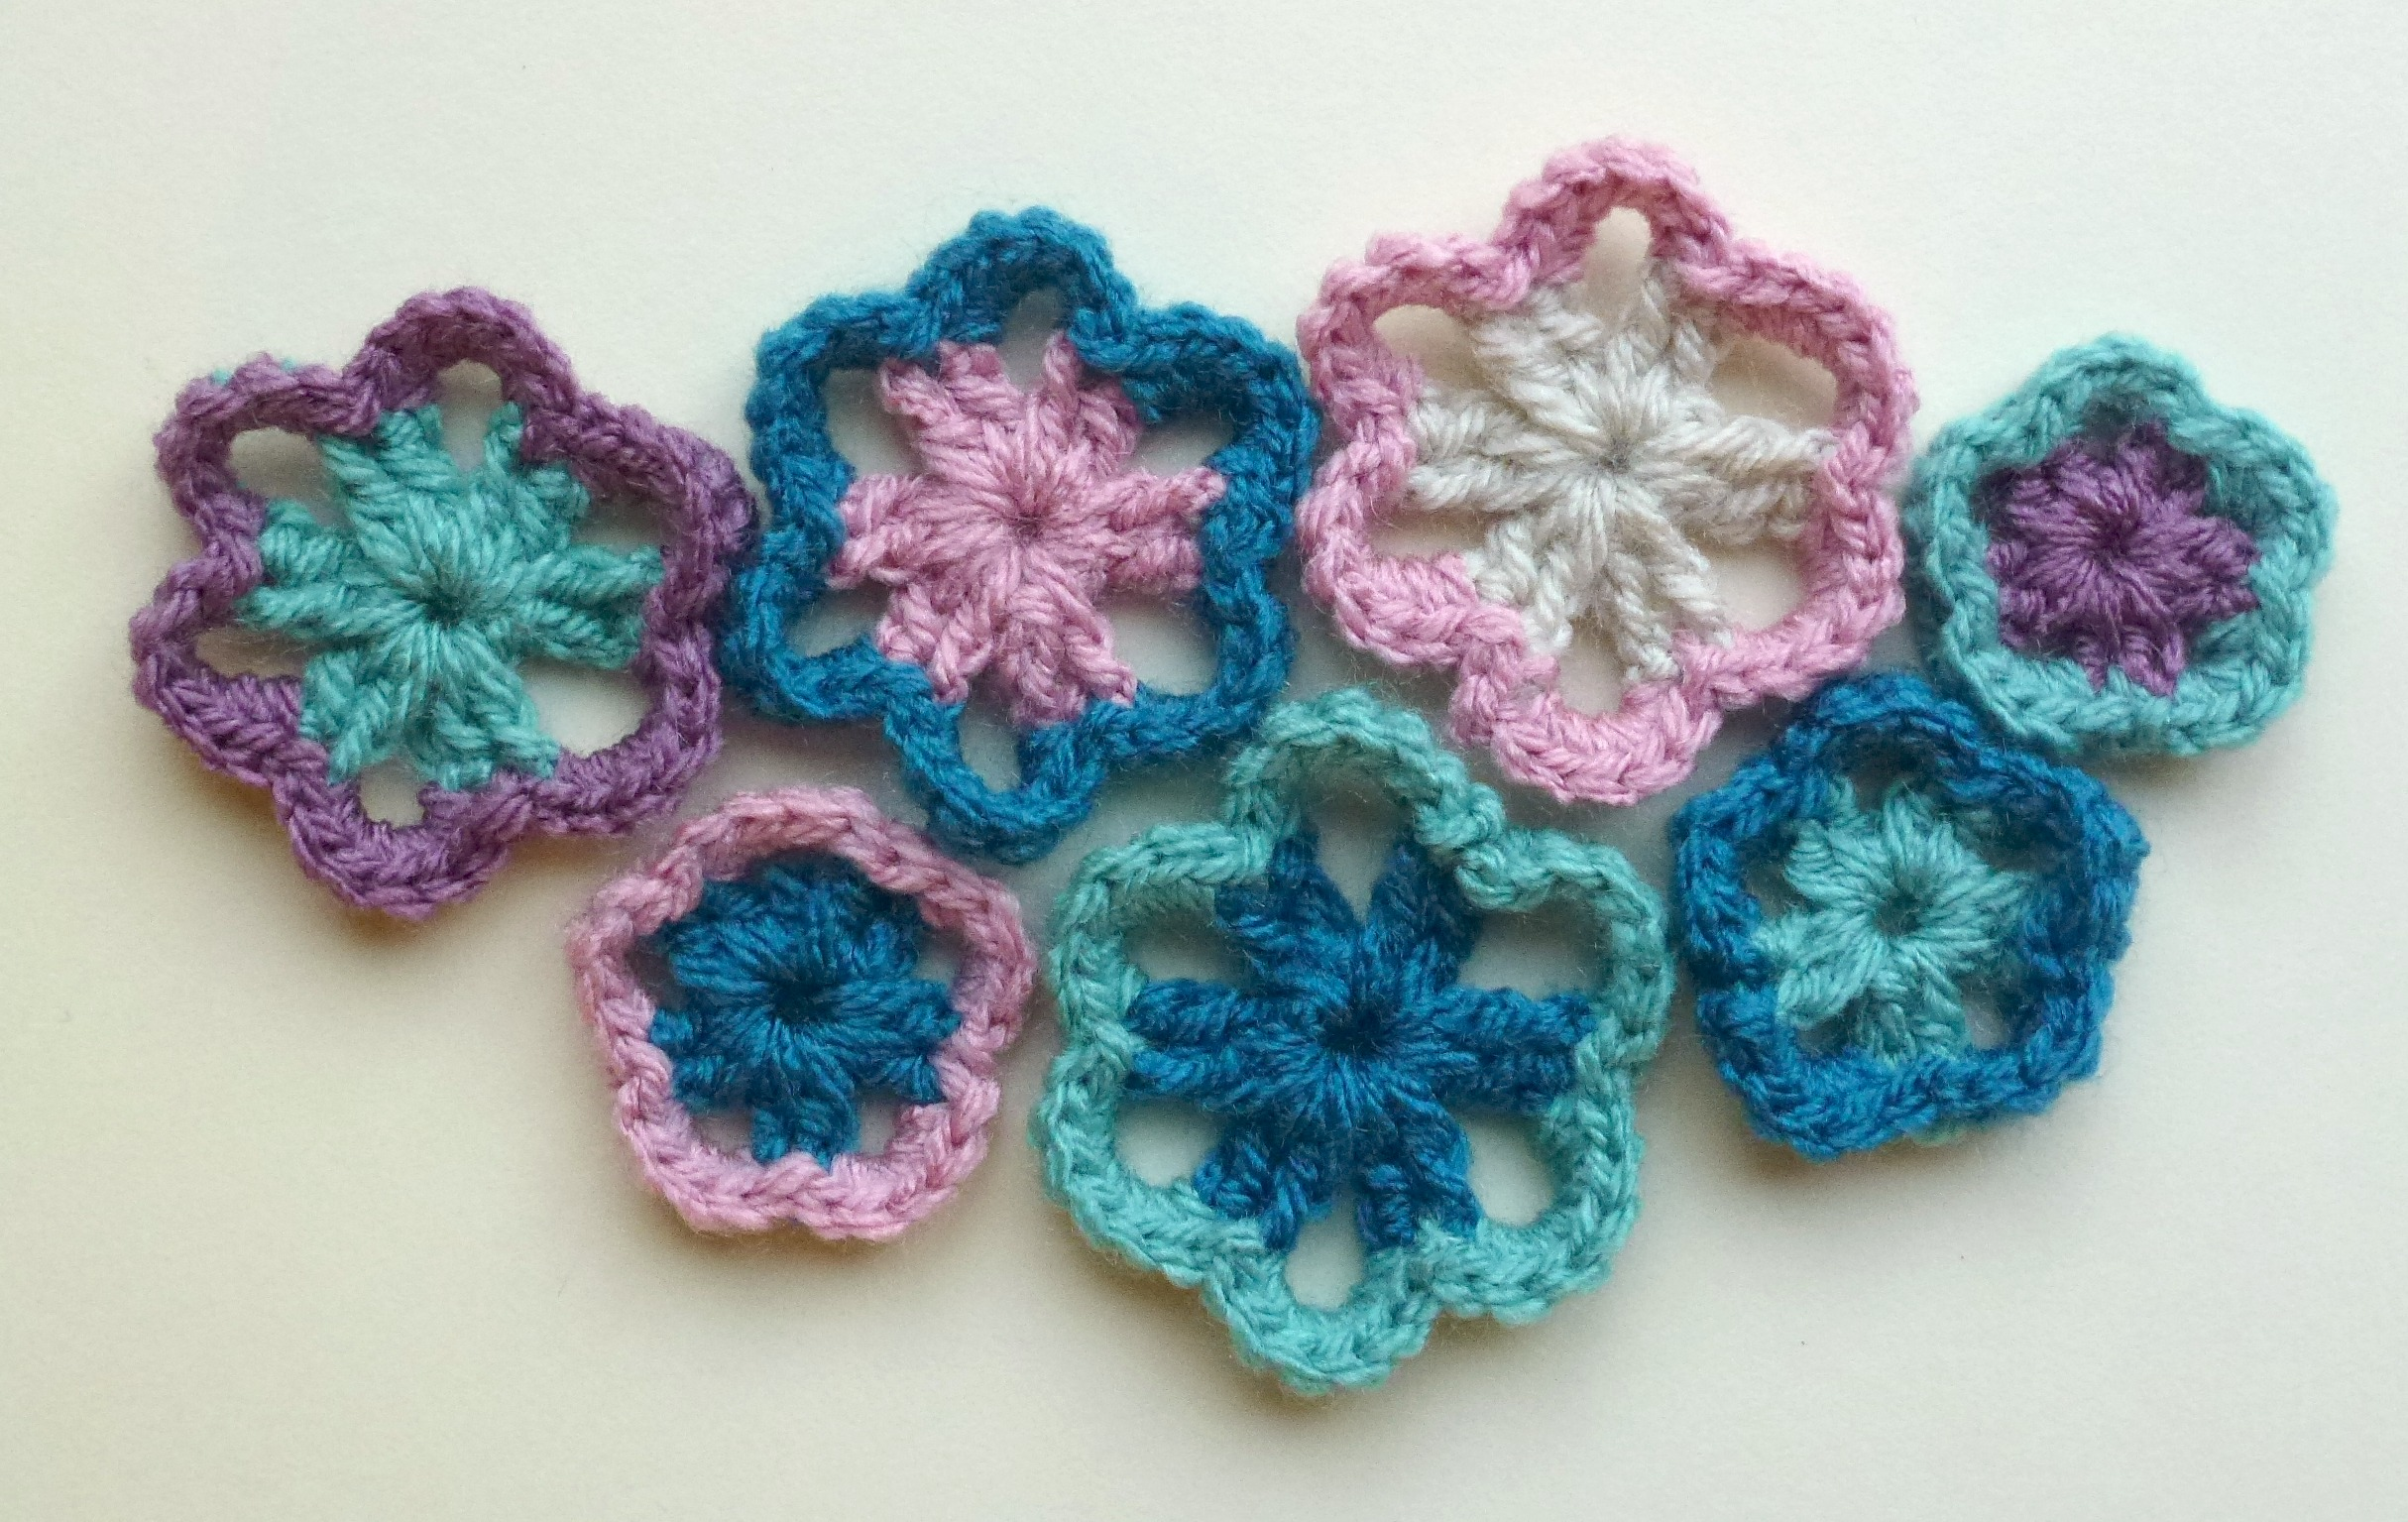 Crochet Stitches That Look Like Flowers : stylecraft special dk - Zeens and Roger